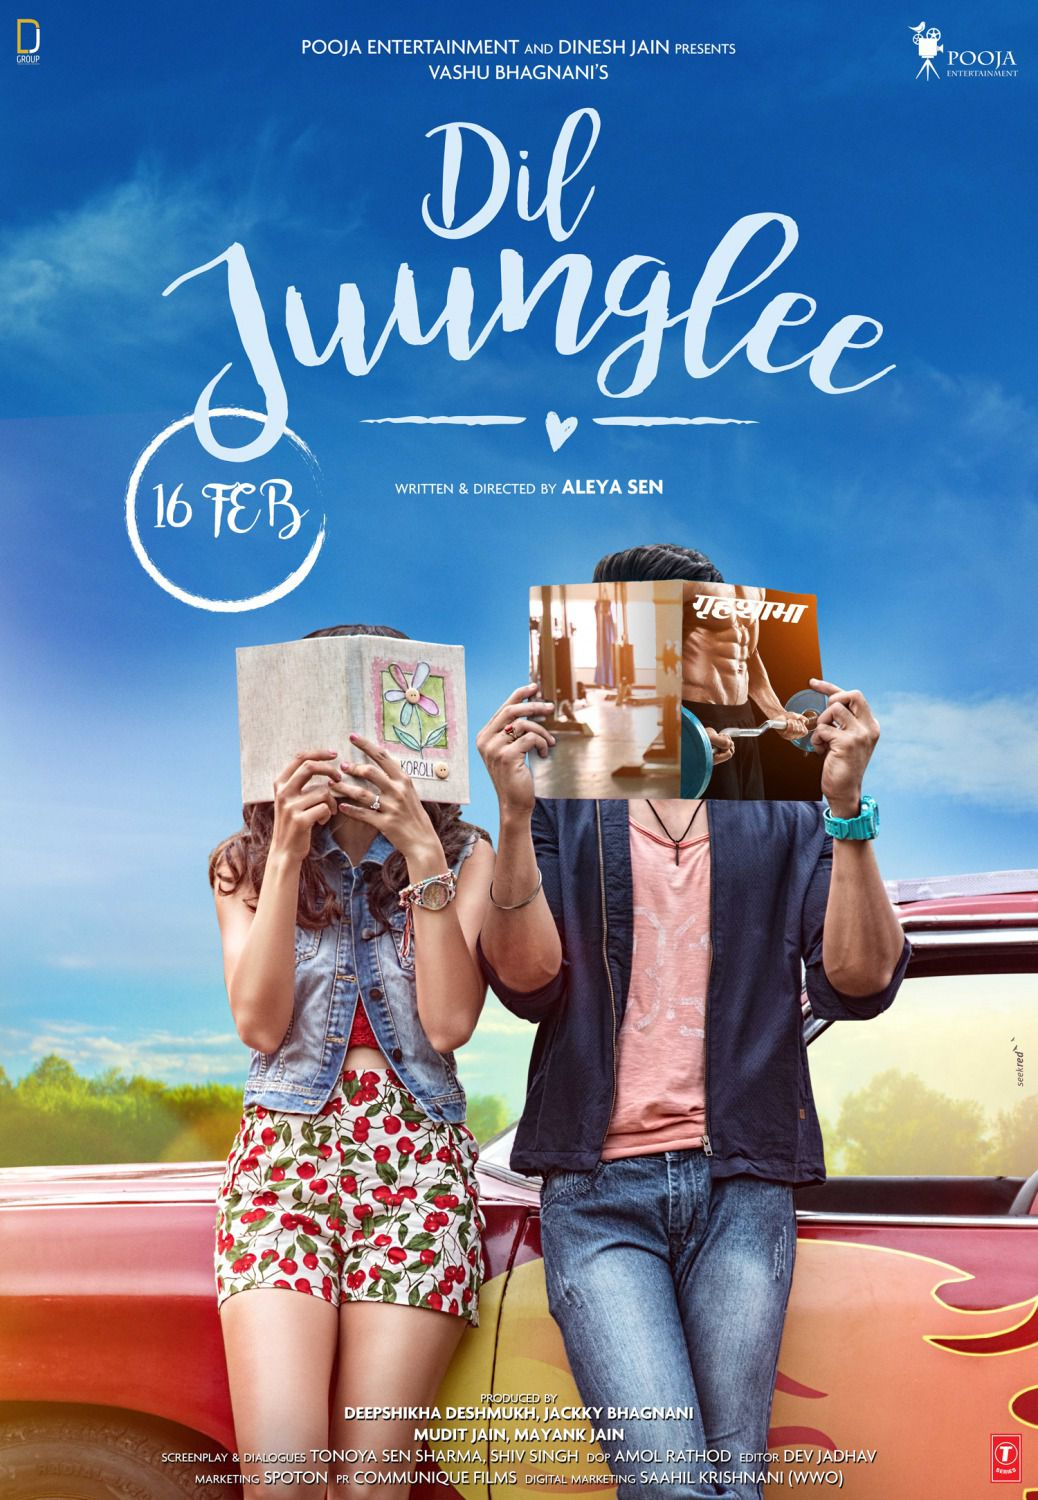 Dil Juunglee - Love Comedy Film Poster - book and magazine